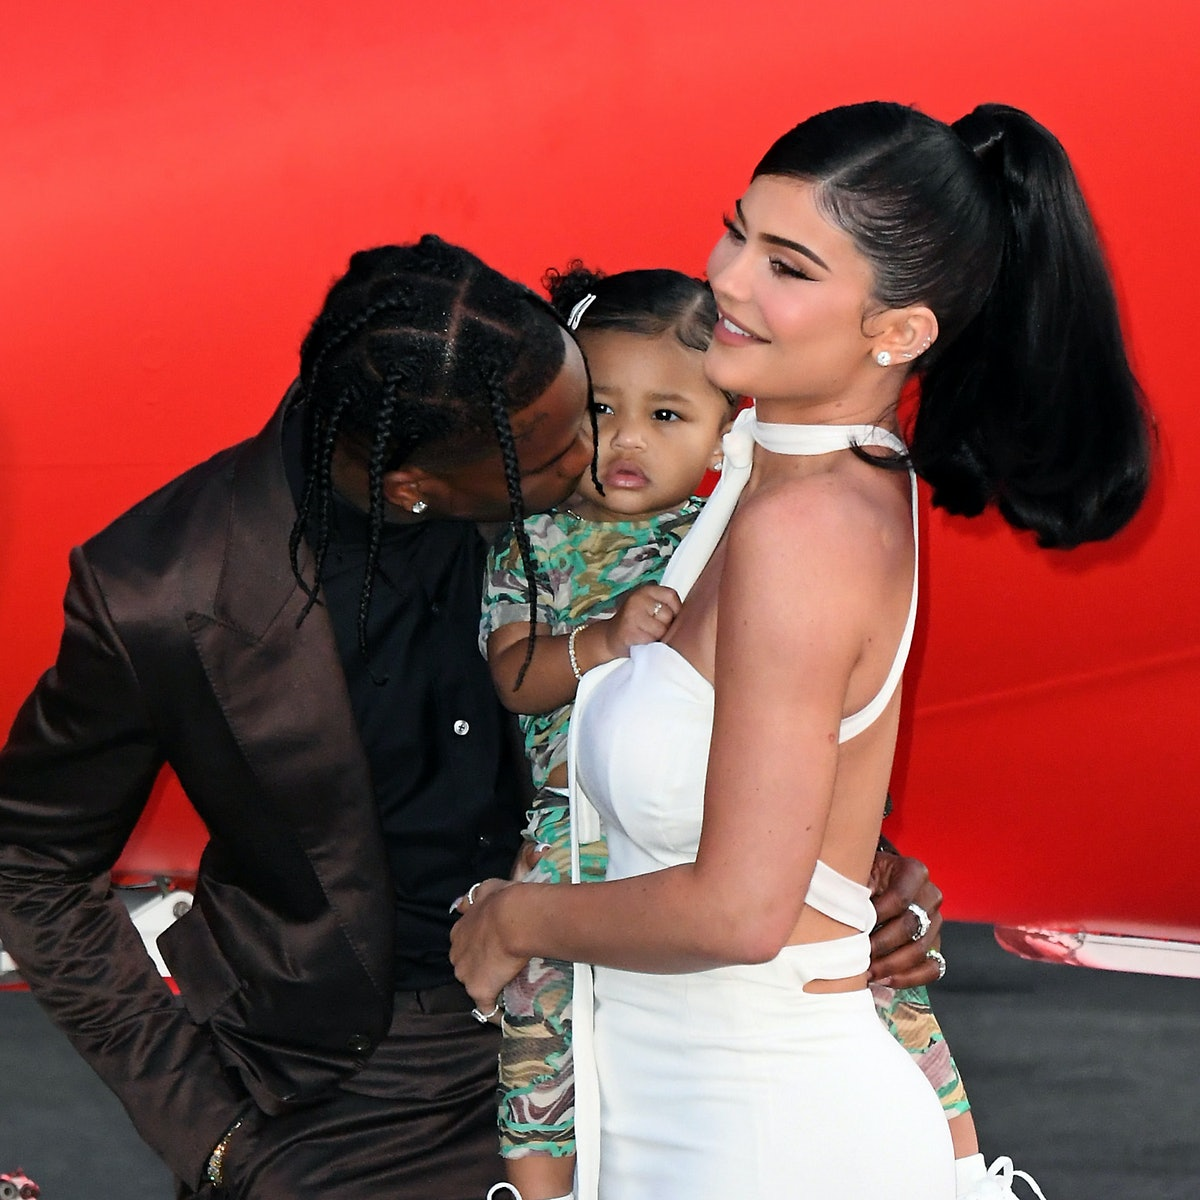 Kylie Jenner, Travis Scott, and their baby Stormi hit the red carpet.